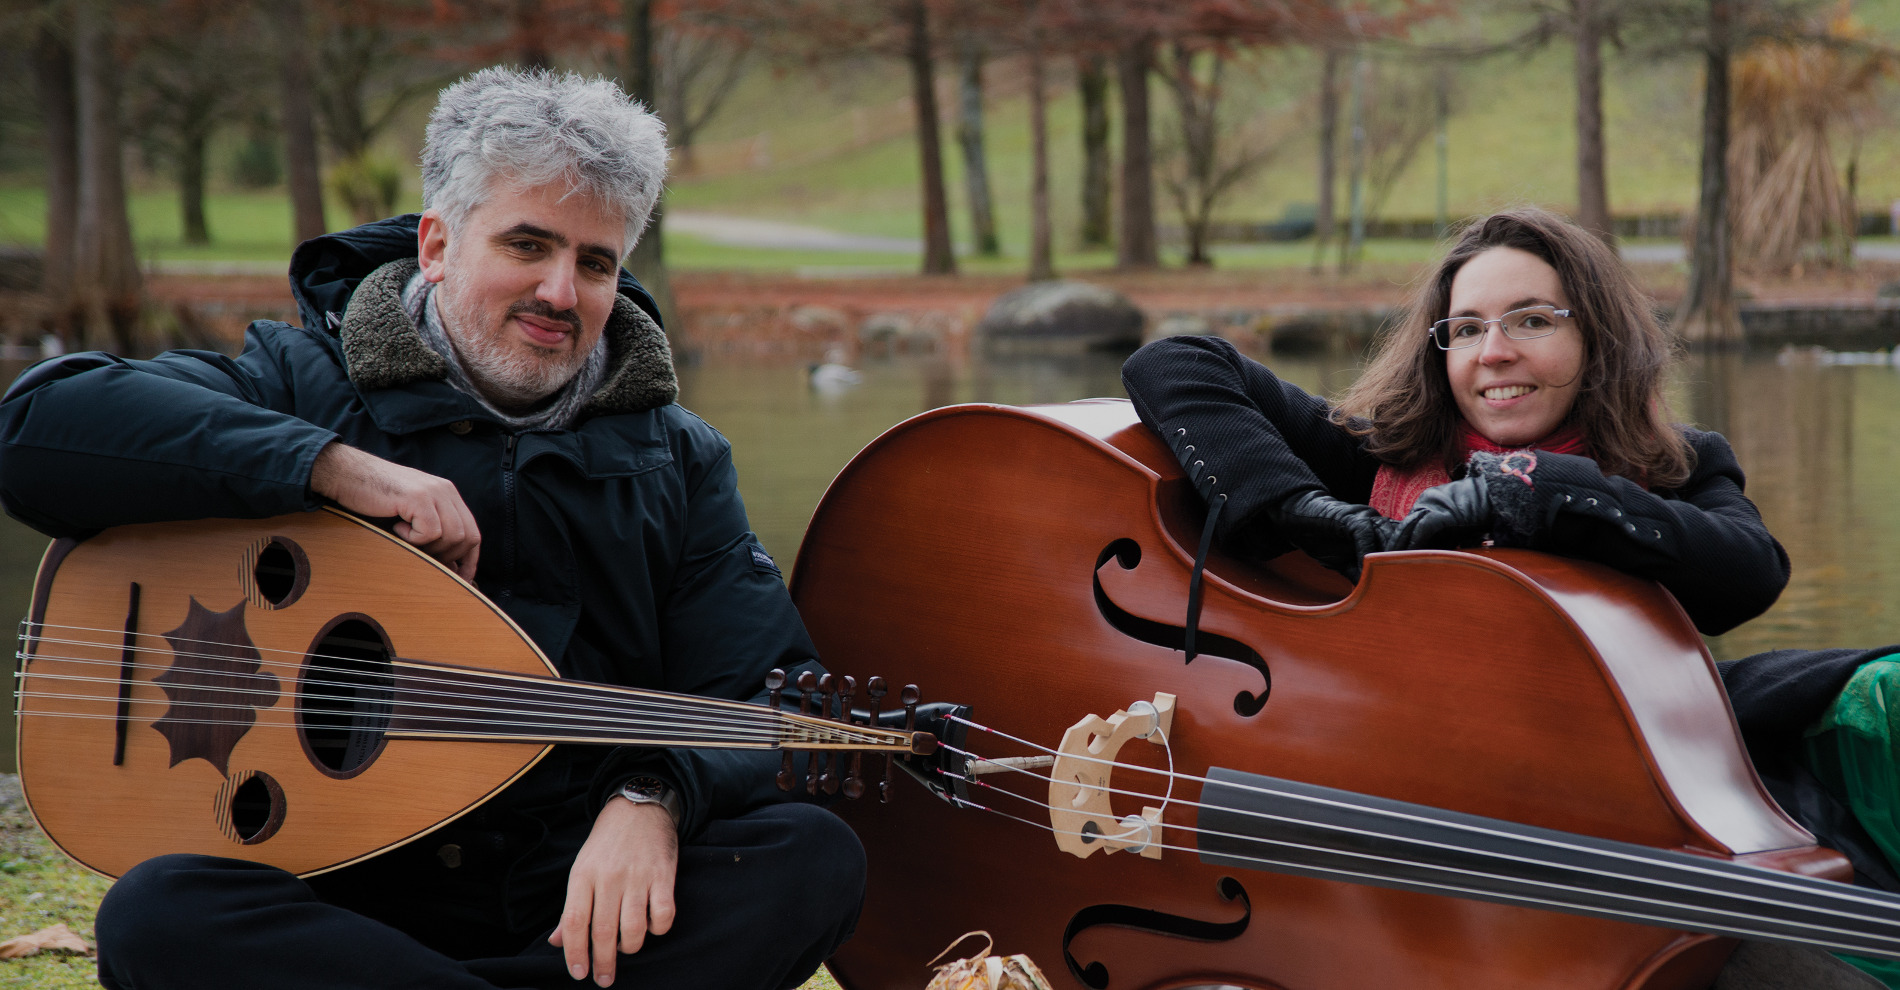 Dafarahn - Francesco Iannuzzelli and Lucile Belliveau